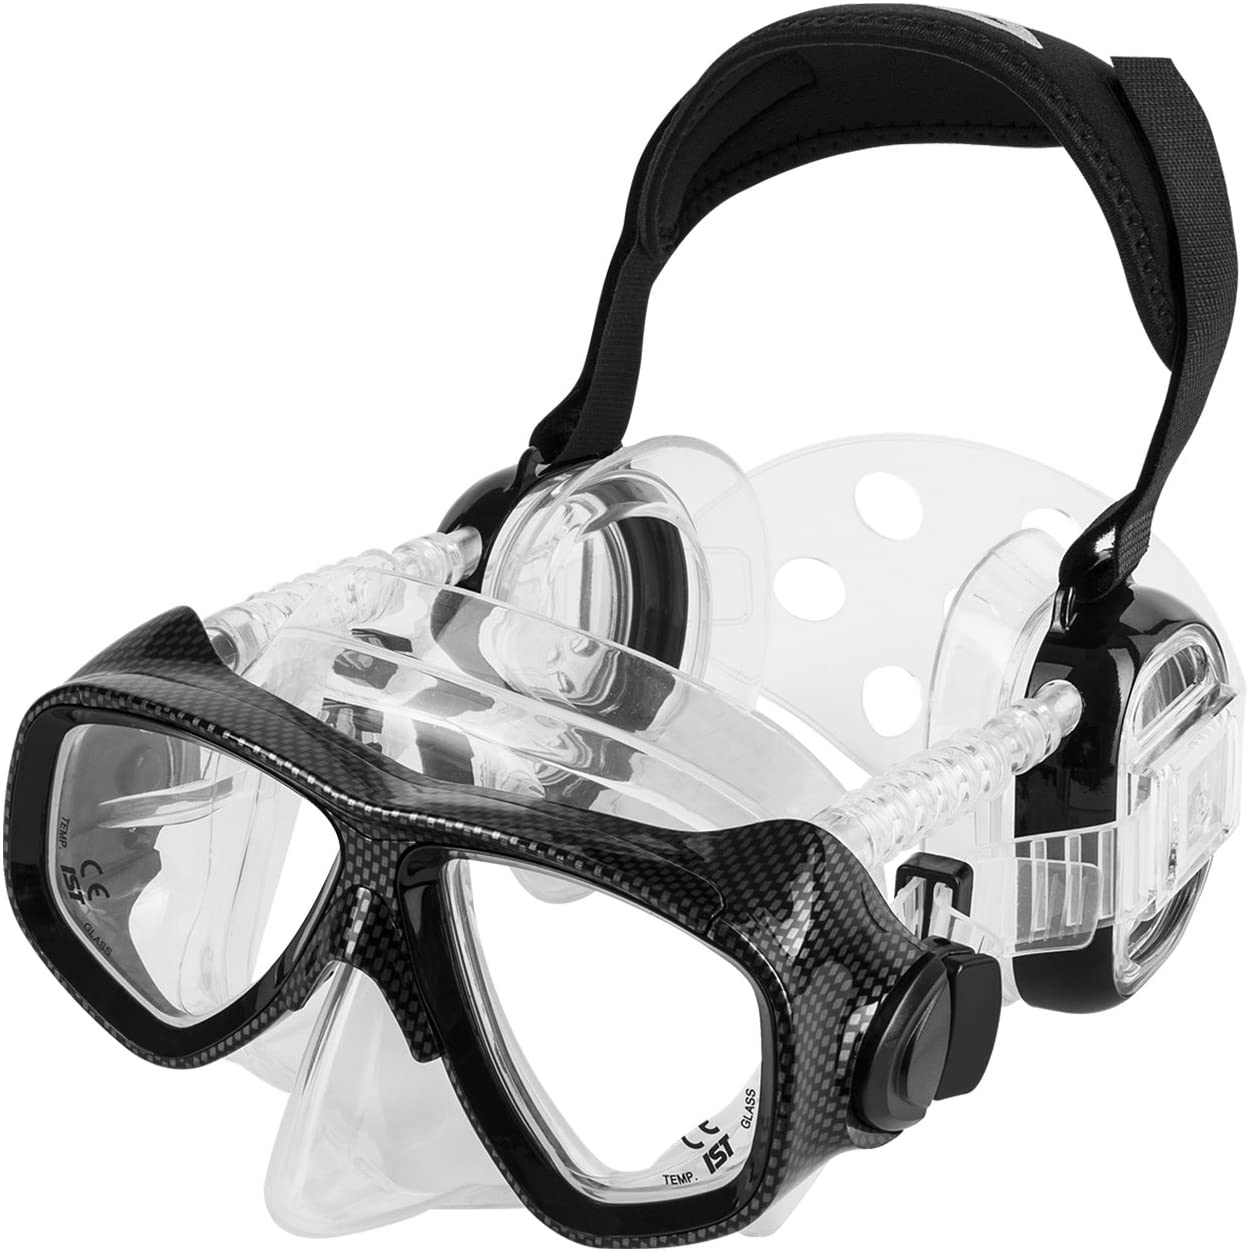 The Early Grades Are Key To Equalizing >> Ist Pro Ear Scuba Diving Mask For All Around Ear Protection Rx Prescription Available